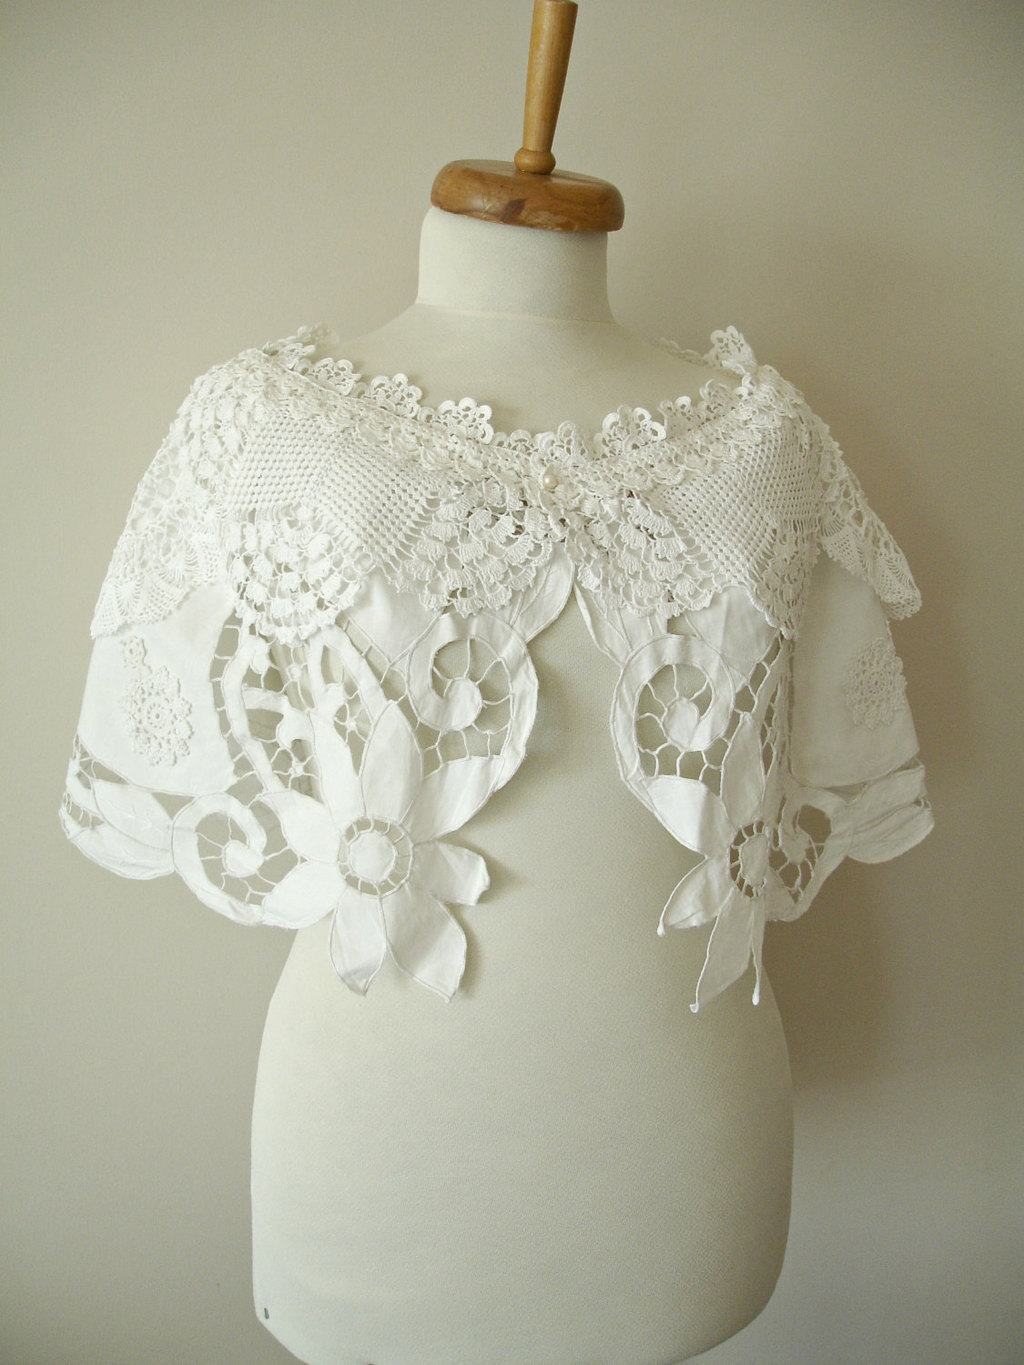 Upcycled-ivory-bridal-caplet-with-crochet-details.full